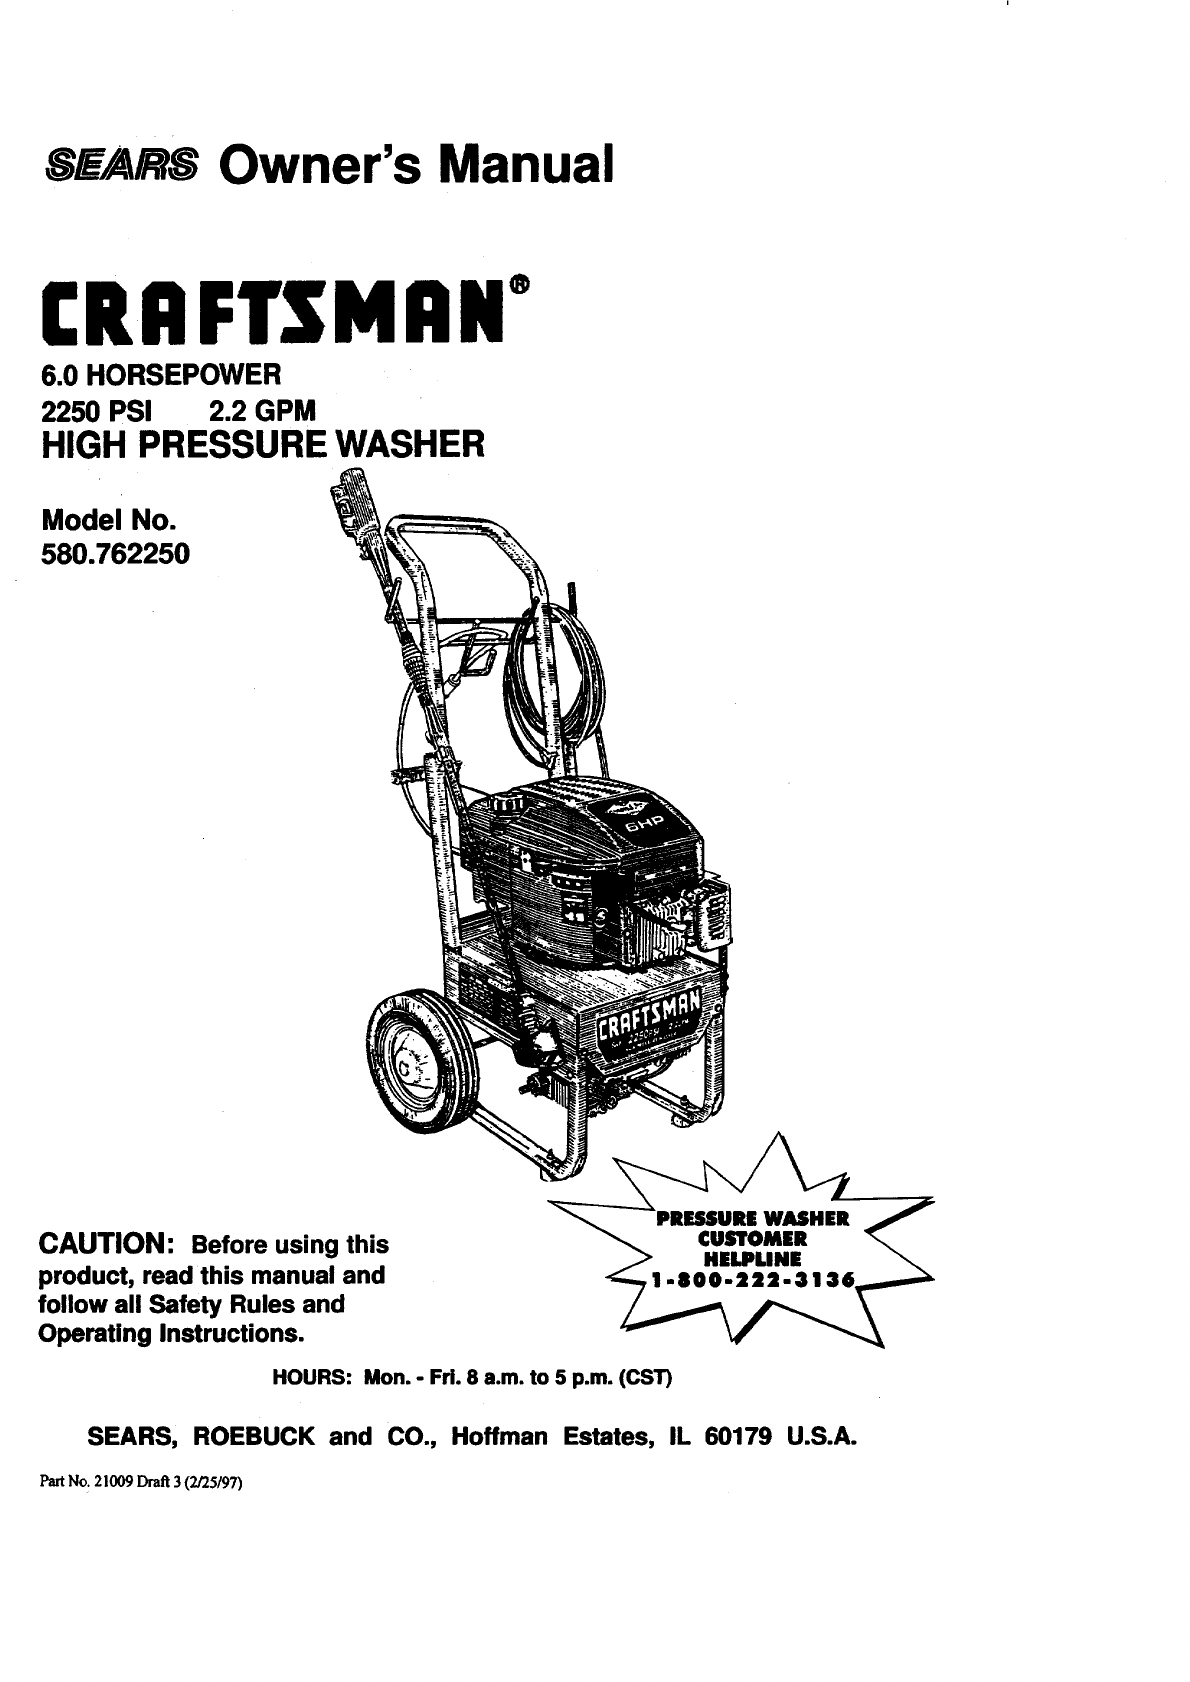 Electric Start System furthermore Scotts Lawn Mower Wiring Diagram also Toro Lawn Tractor Wiring Diagram additionally Craftsman 25cc Leaf Blower Manual Wiring Diagrams further Craftsman Garage Door Opener Parts Diagram. on craftsman repair manual